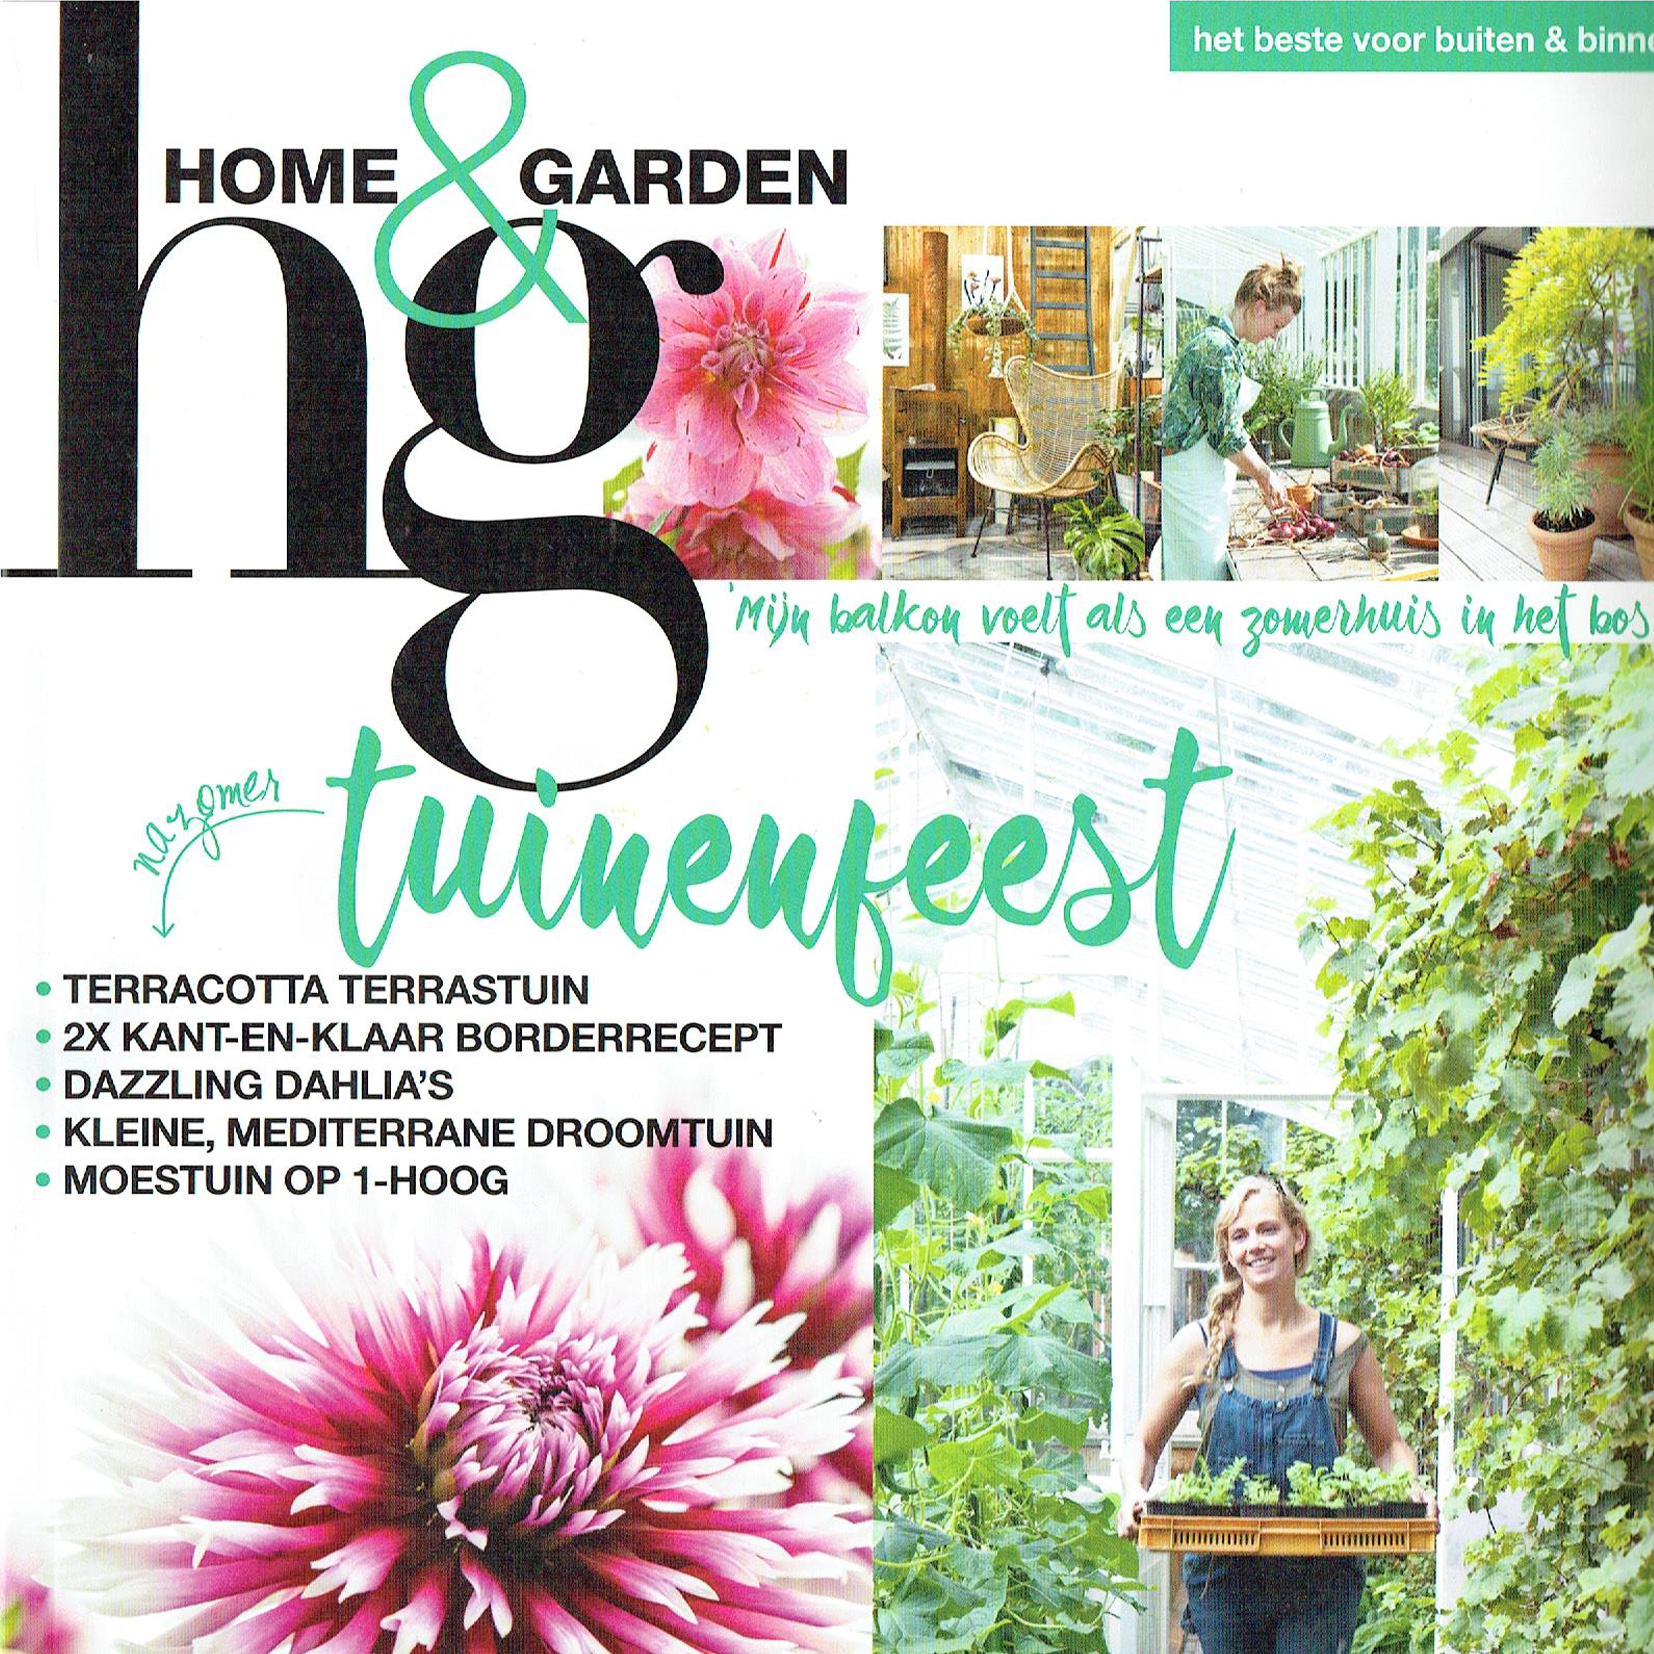 Home&Garden, september 2016